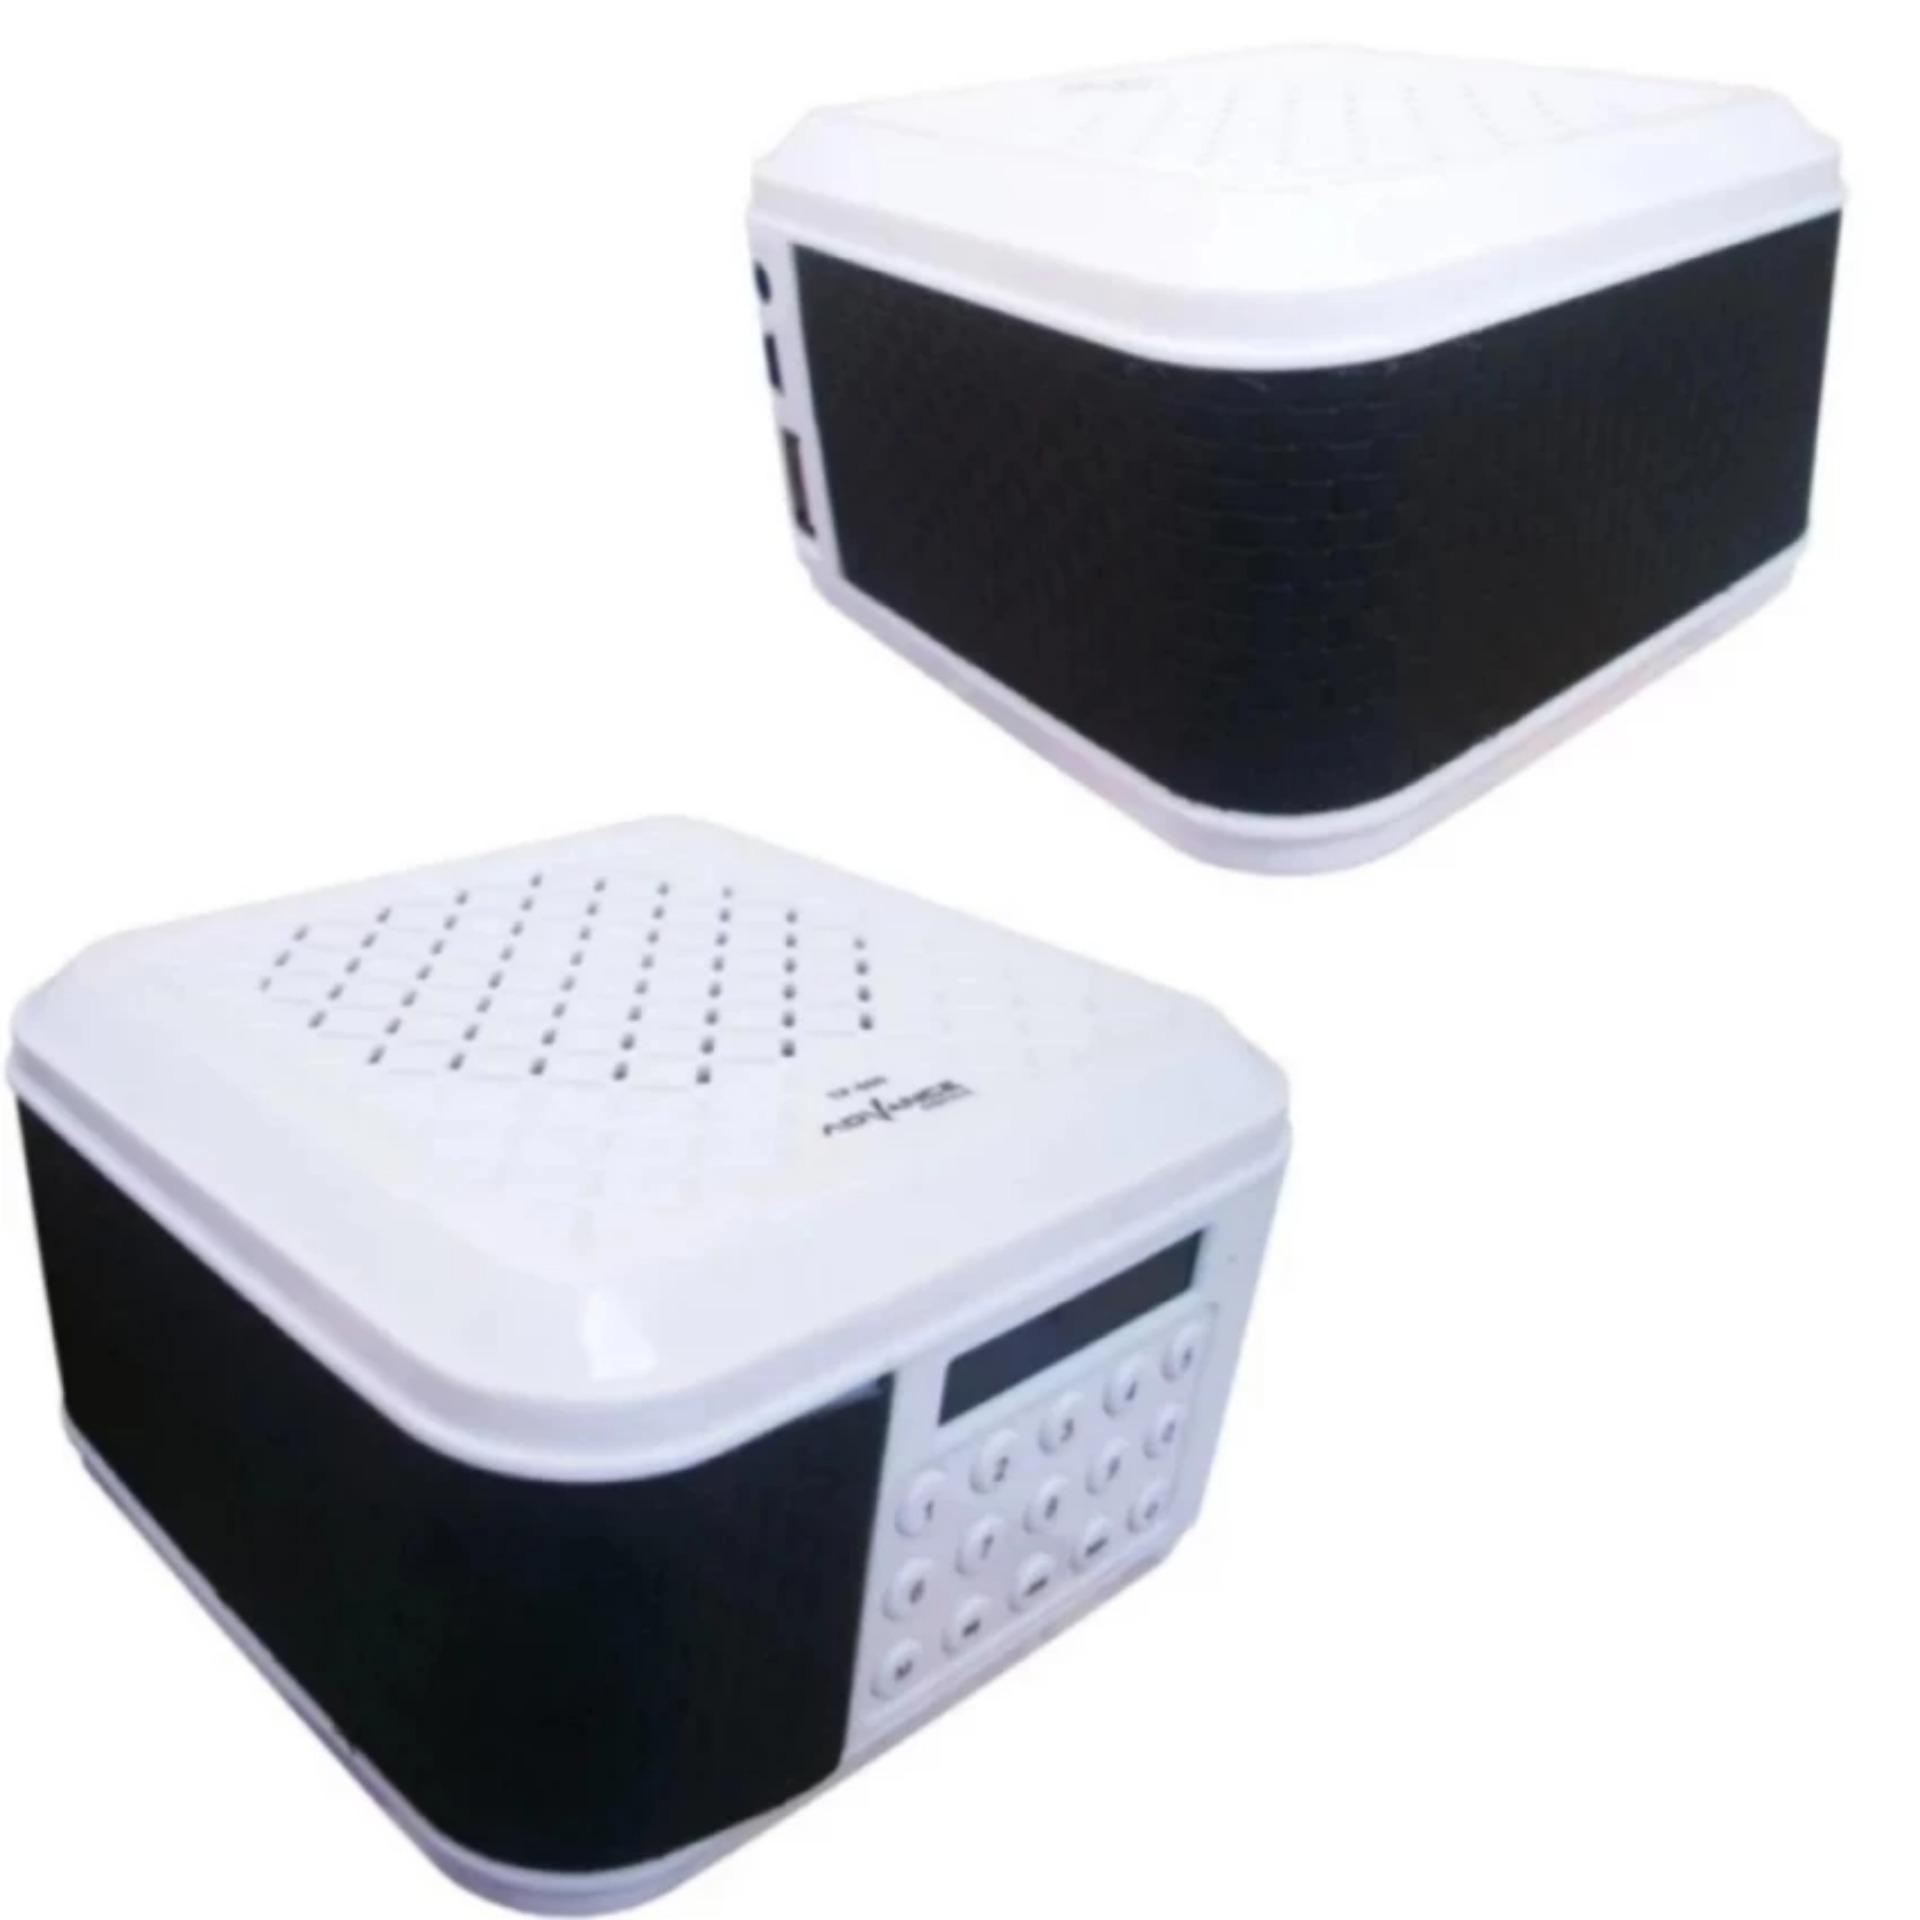 Penawaran Istimewa Speaker Portable Xtra Power Sound Advance Tp 600 Terbaru